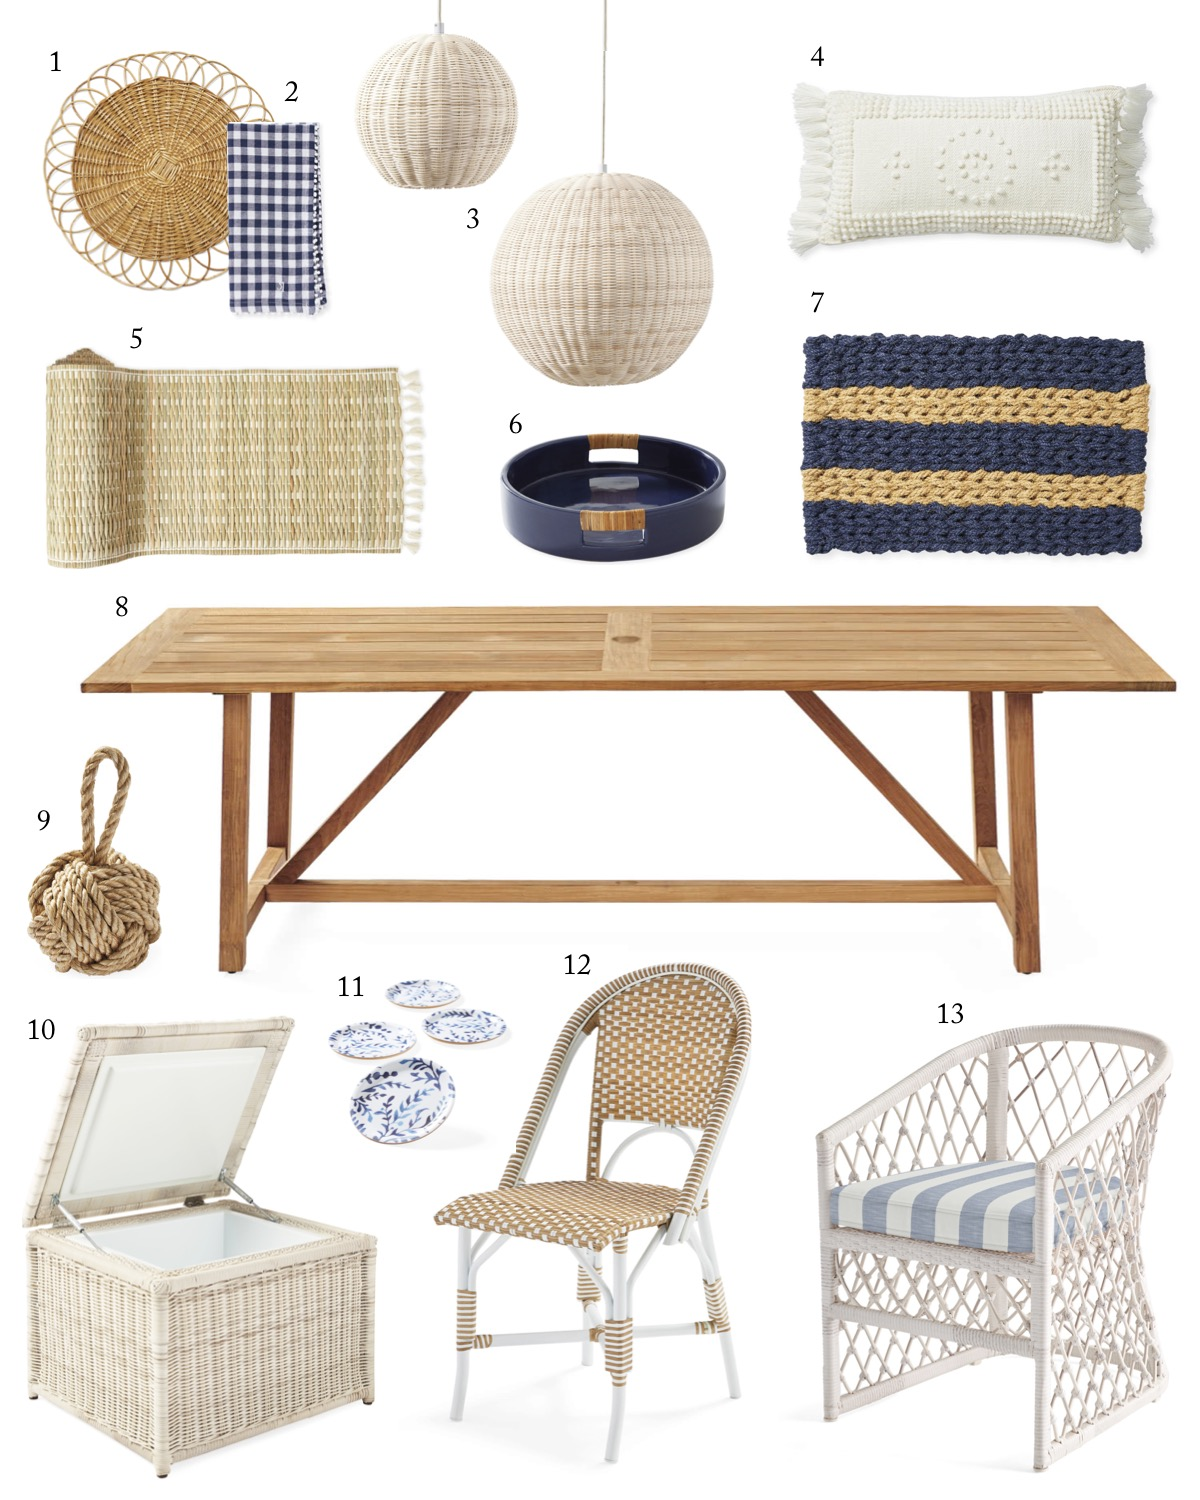 Serena & Lilly Outdoor Decor on Sale